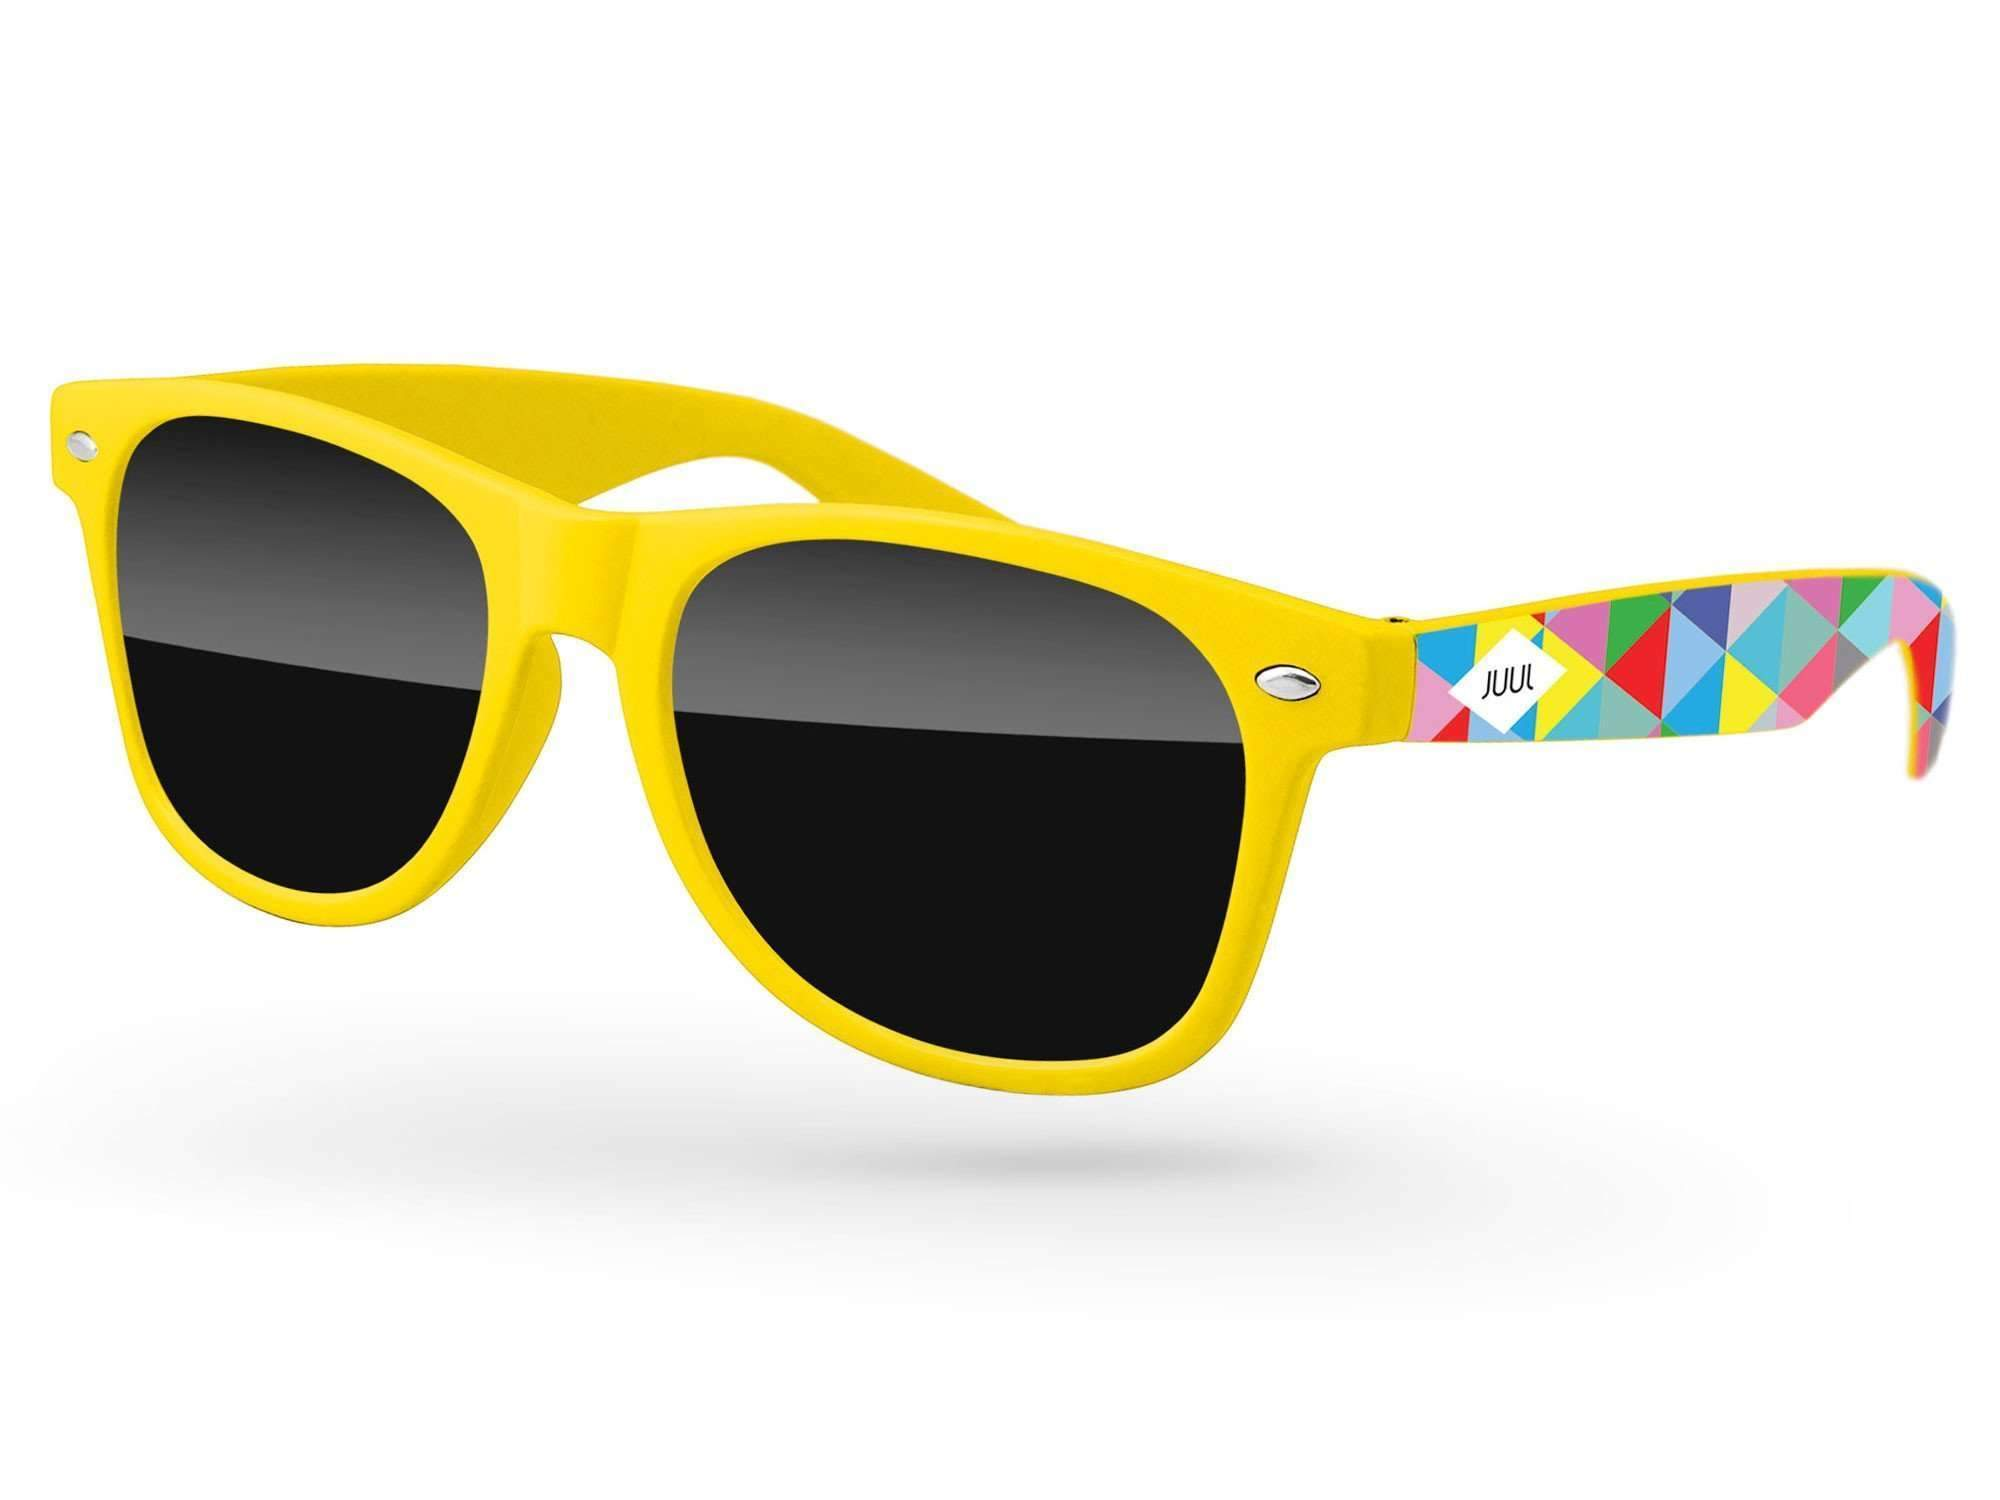 Retro Promotional Sunglasses w/ full-color arms heat transfer